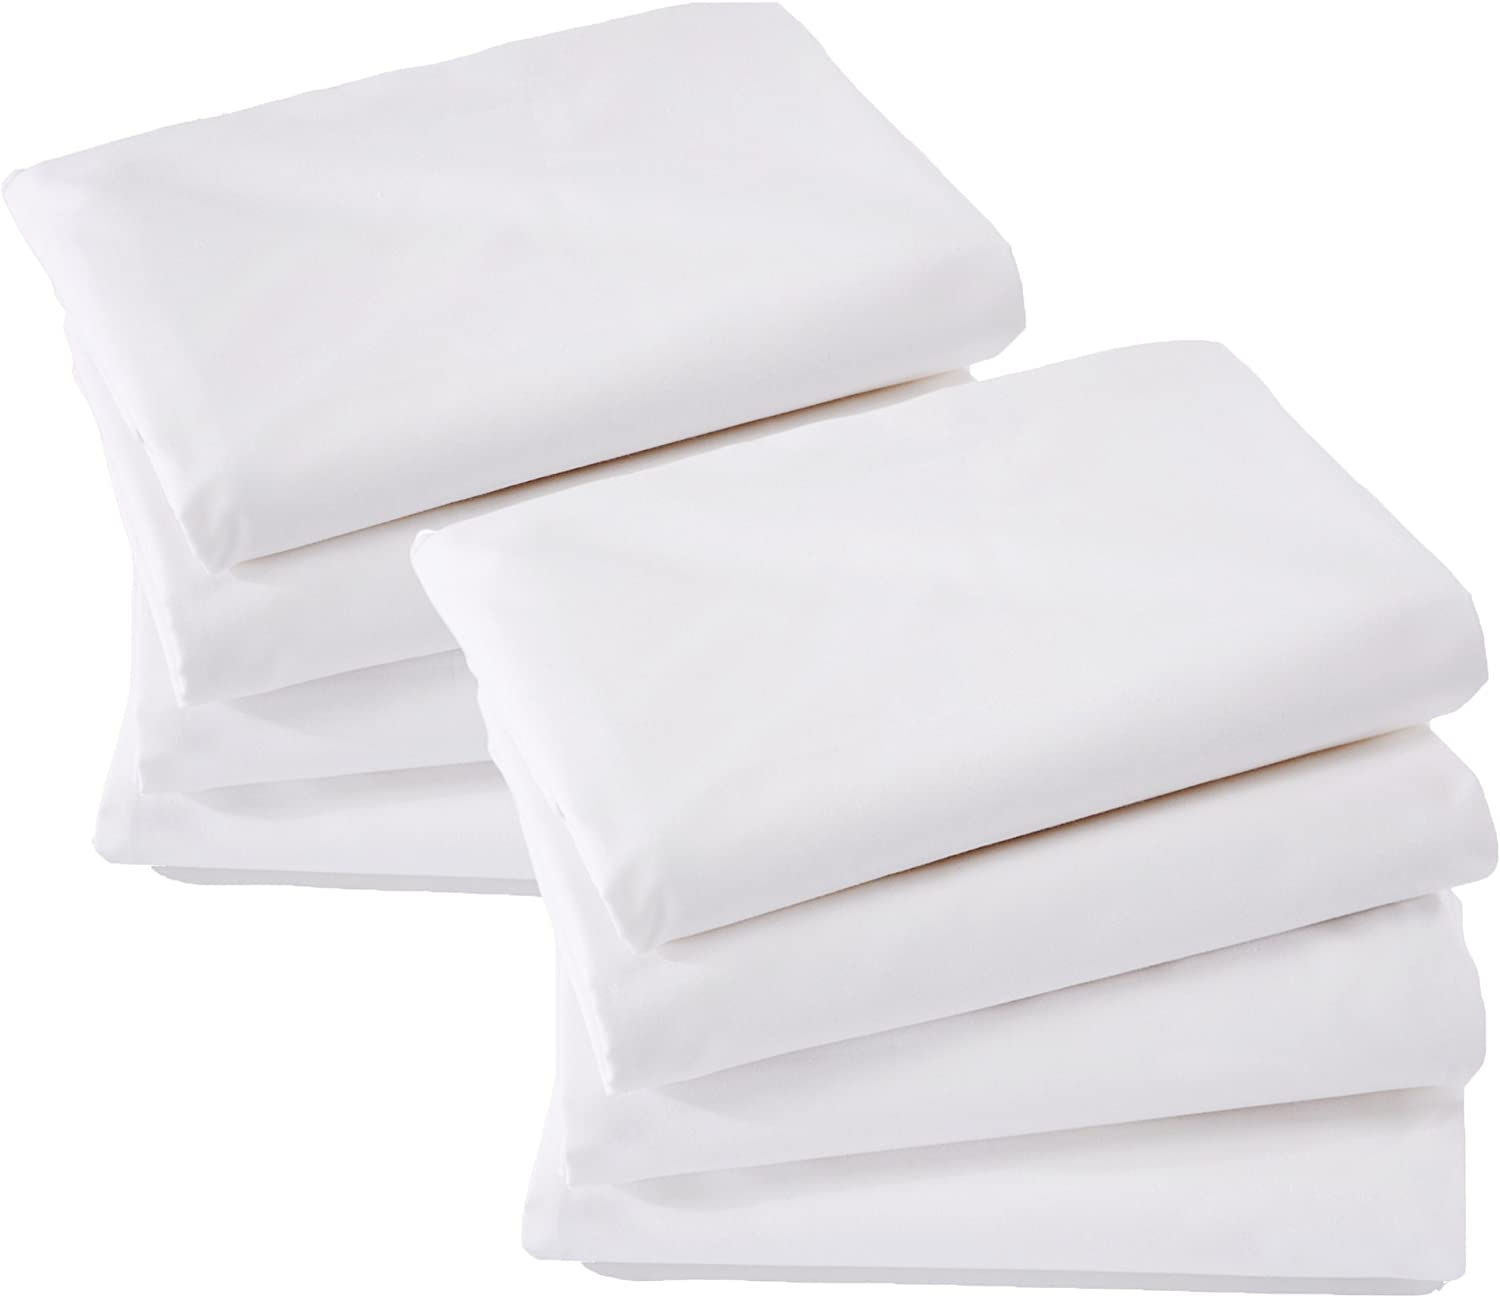 ALLERelief 8 Pack Zippered Pillow Protectors | Hypoallergenic | Premium Fibers 100% Brushed Microfiber | Anti-Microbial Construction | Noise-Free Pillow Covers |King Size